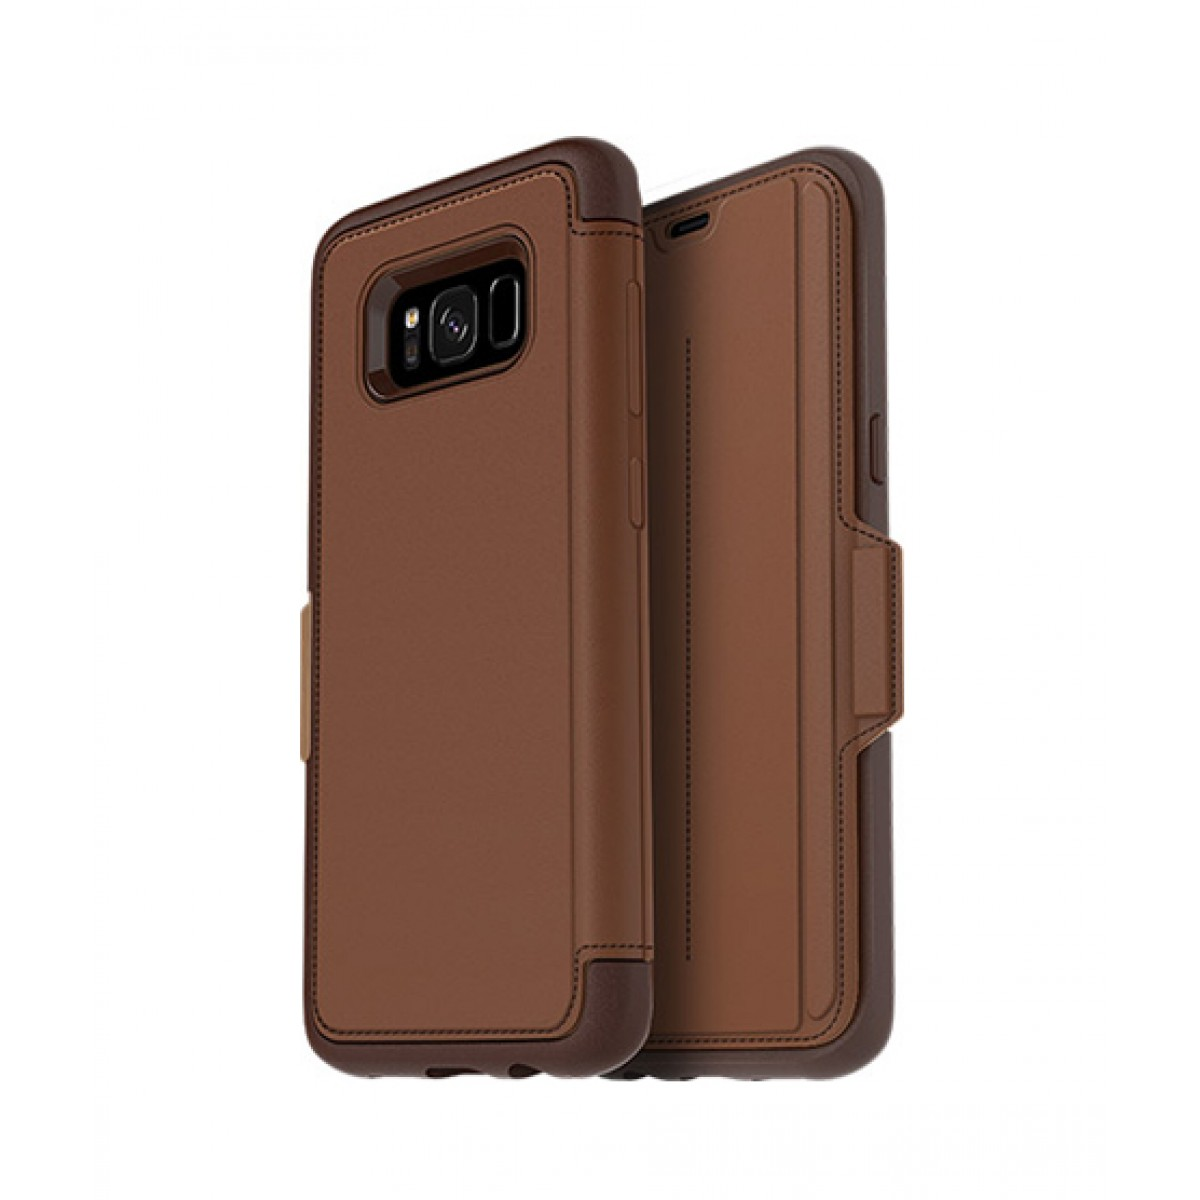 new products d4fde 6a167 OtterBox Strada Series Leather Folio Burnt Saddle Case For Galaxy S8